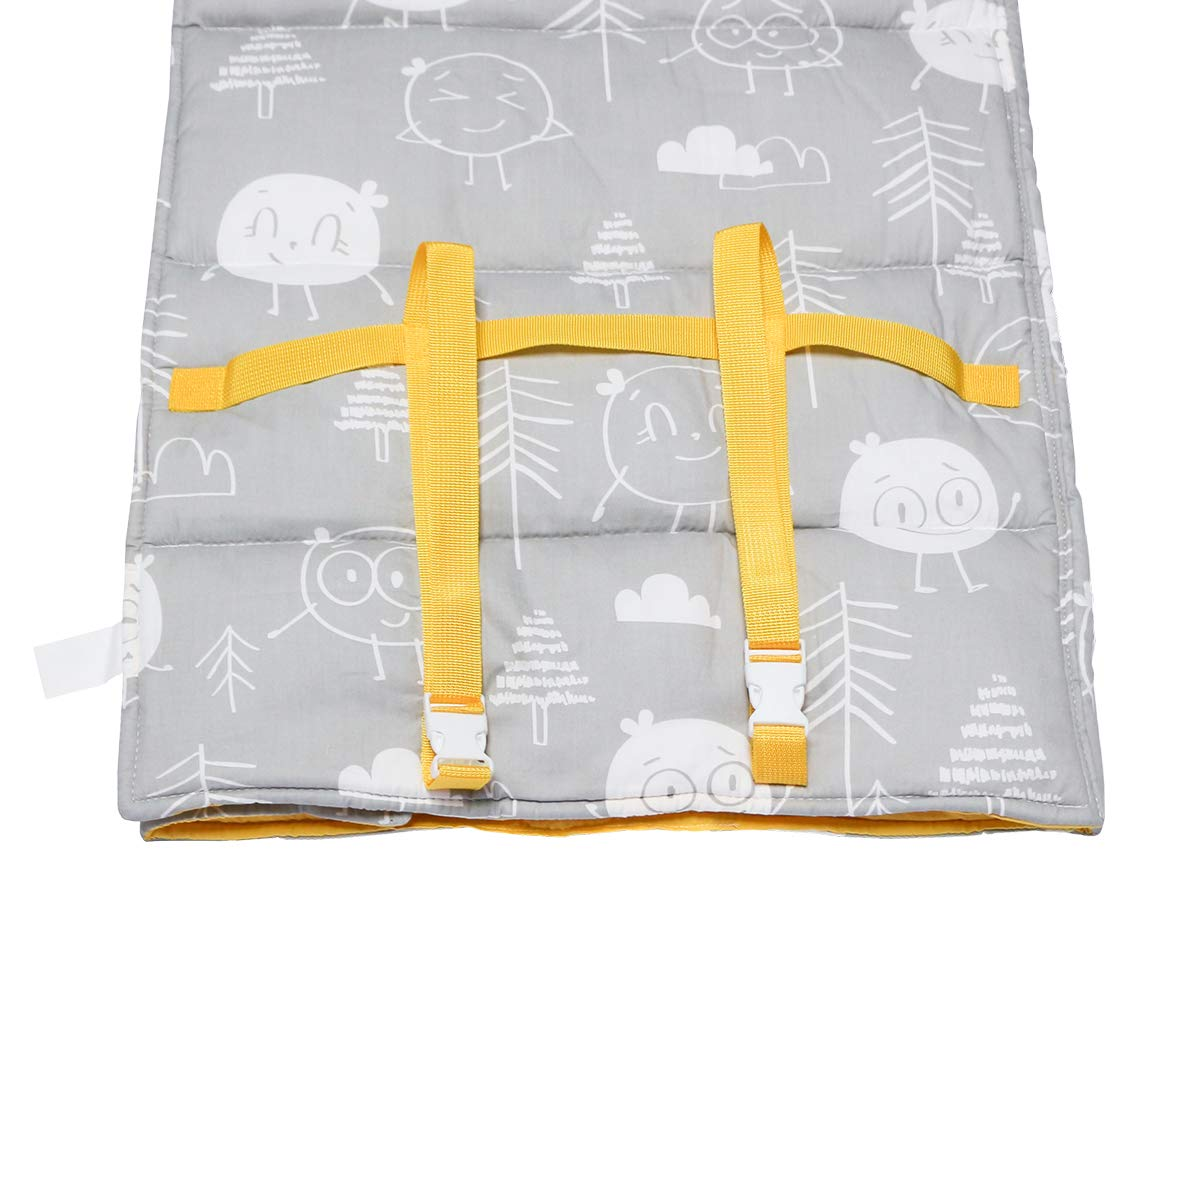 Butterfly Hi Sprout Kids Toddle Lightweight and Soft Nap Mat